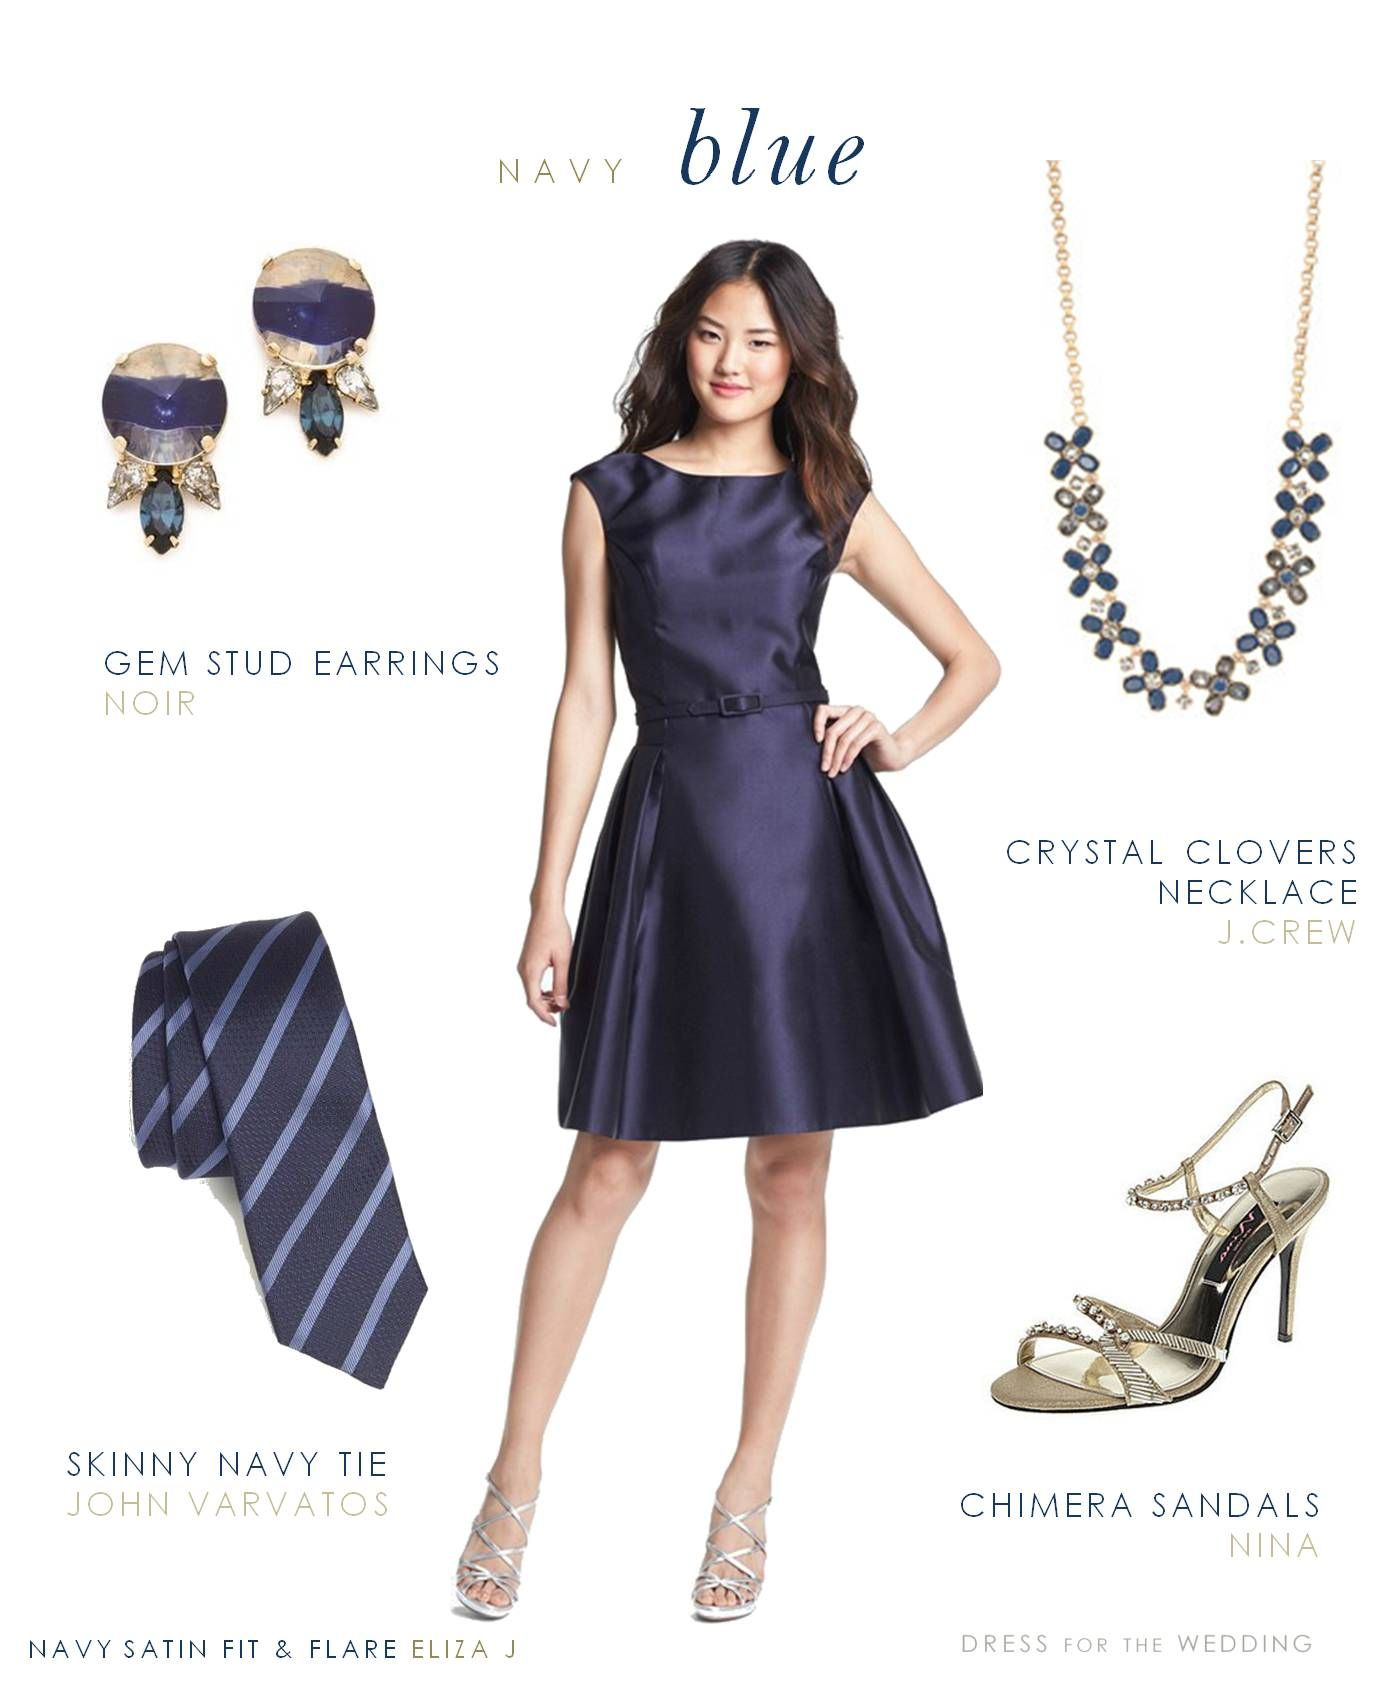 Black dress yellow accessories - How To Accessories A Navy Lace Dress